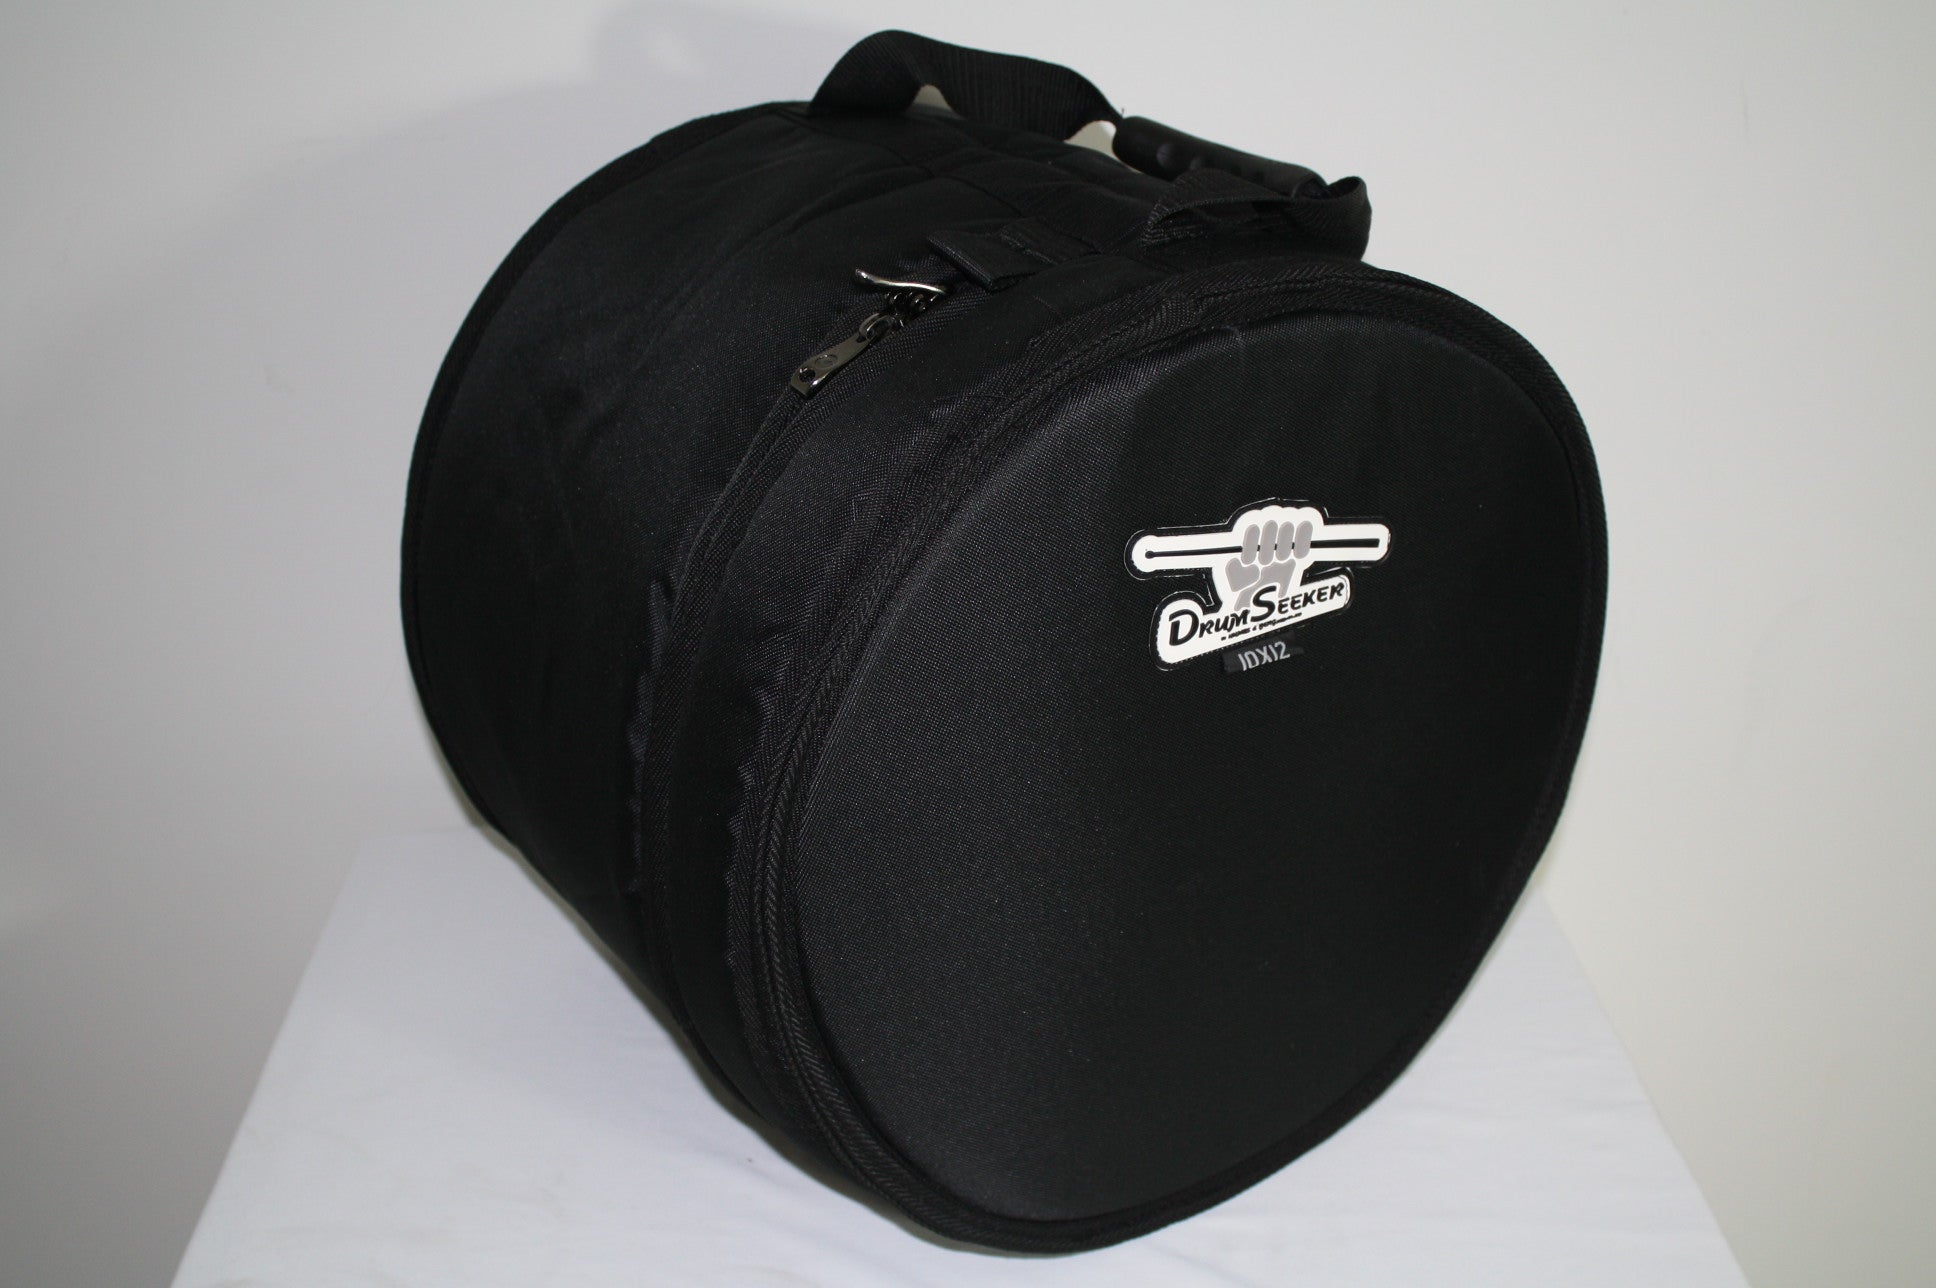 H&B  Drum Seeker 10 x 12 Inches Tom Drum Bag